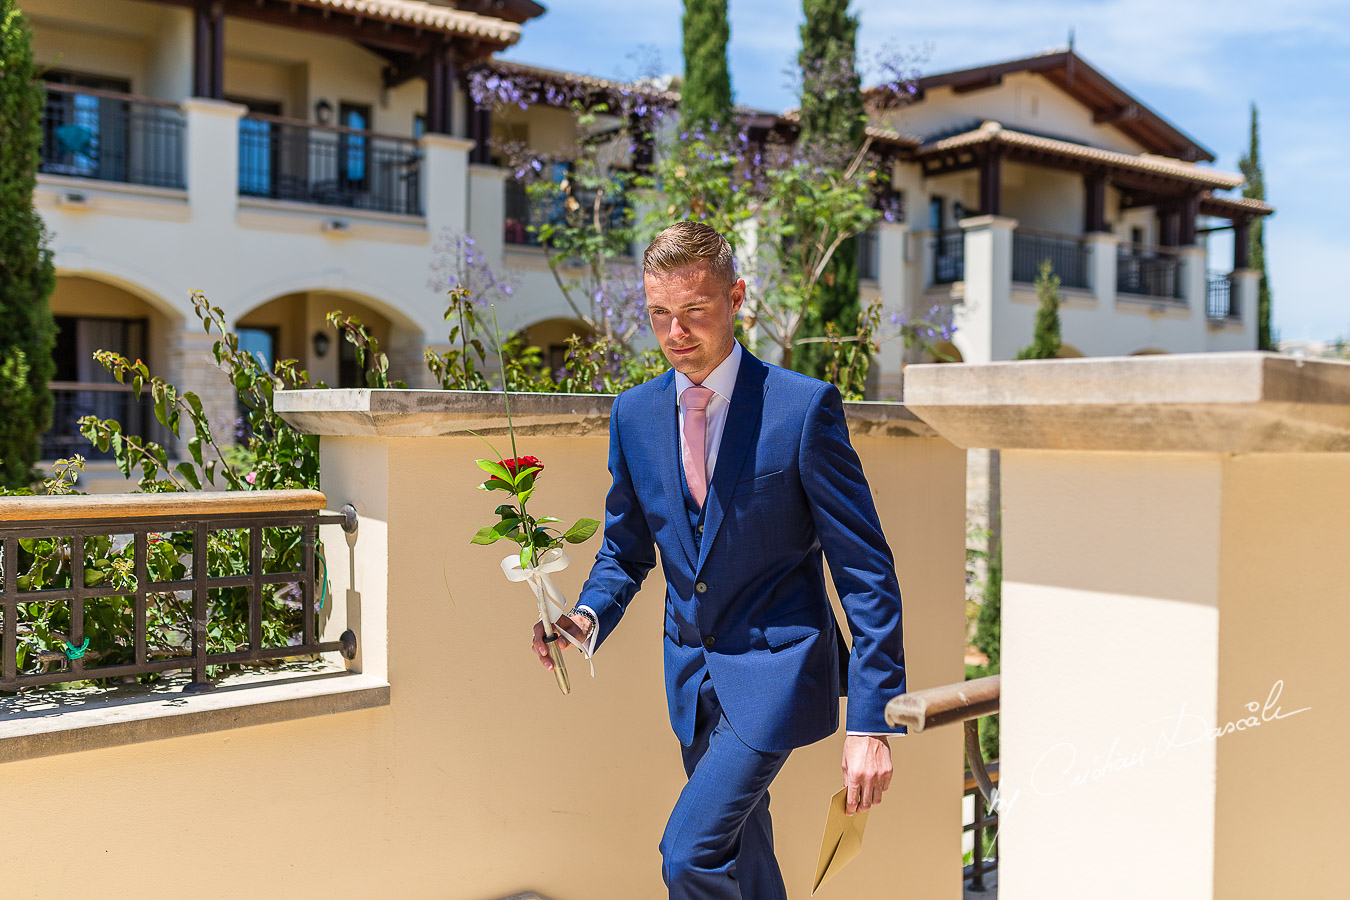 The Bestman delivering a flower and an envelop captured at Aphrodite Hills Resort before the wedding ceremony by Cristian Dascalu.